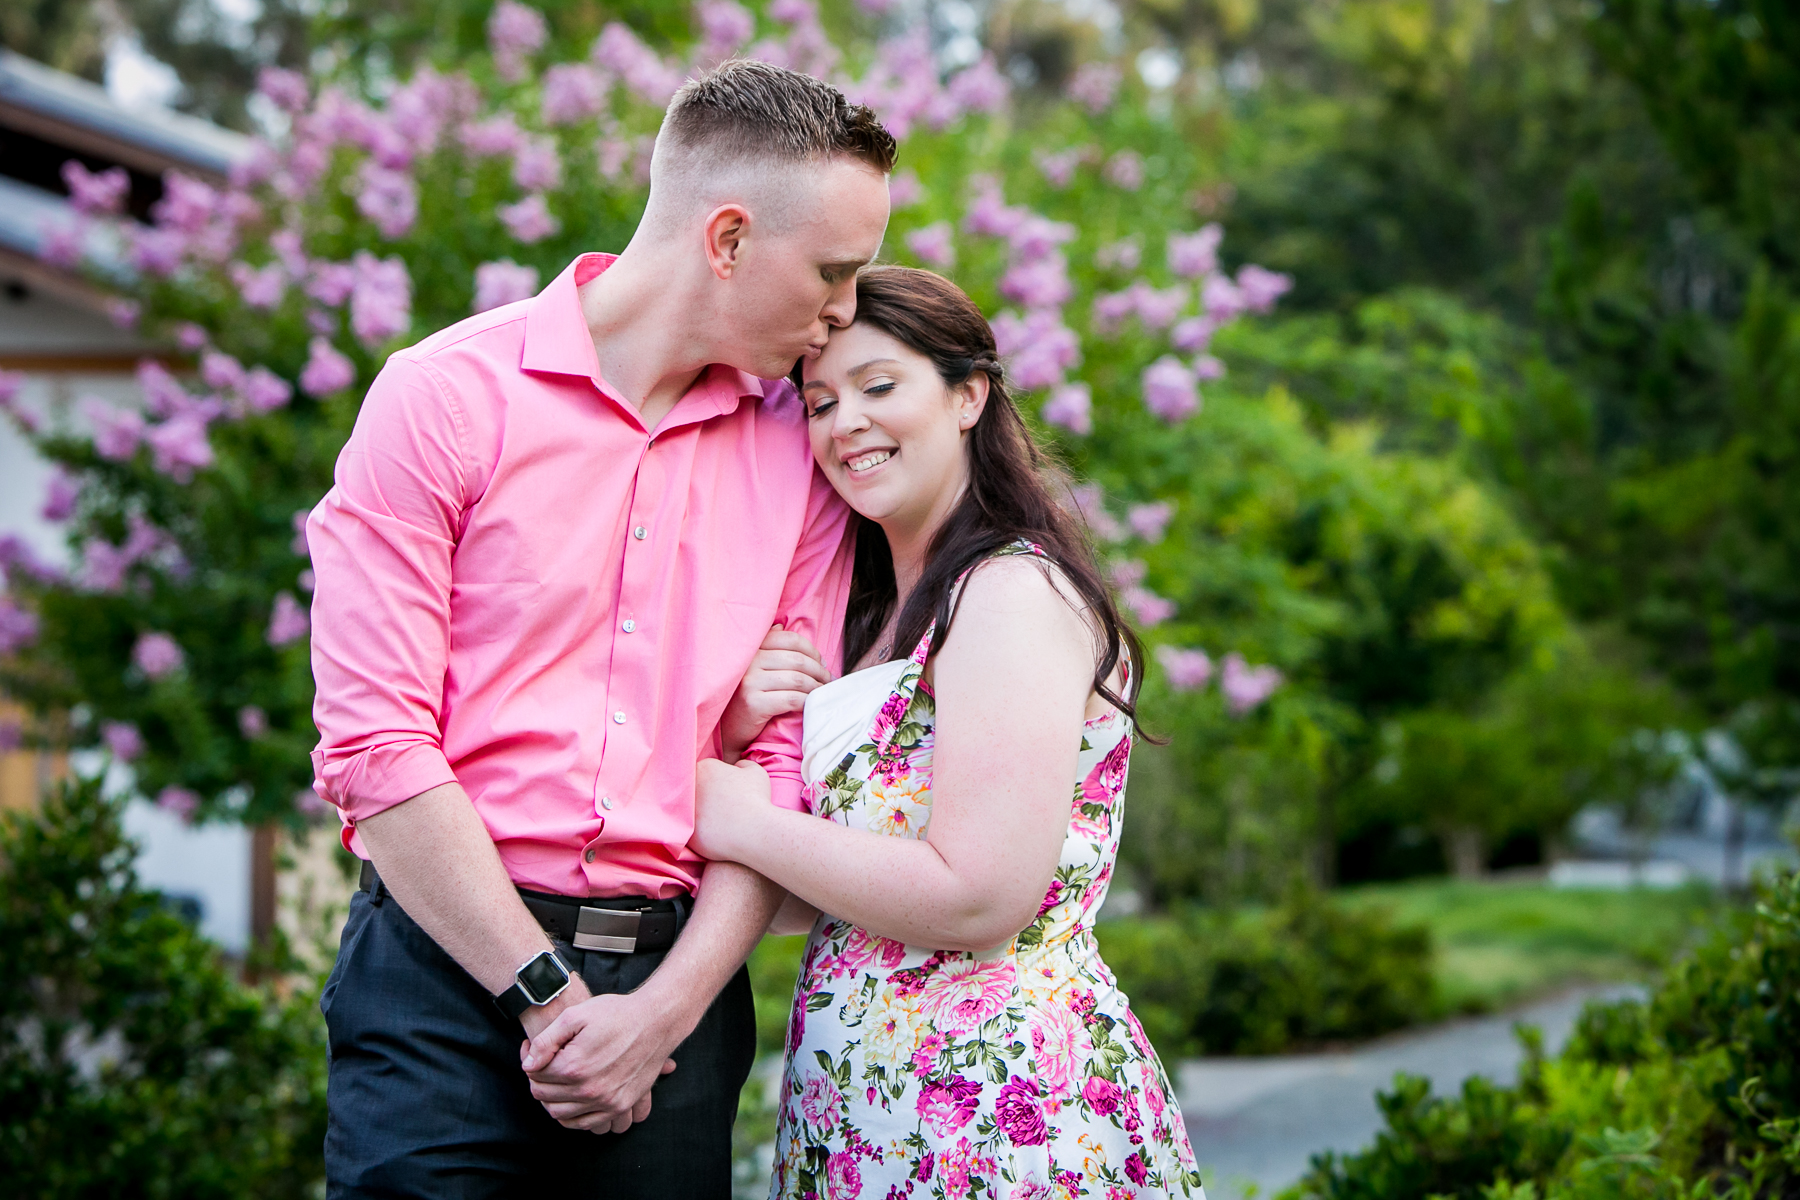 groom-to-be gives bride-to-be kiss on forehead during balboa park engagement session